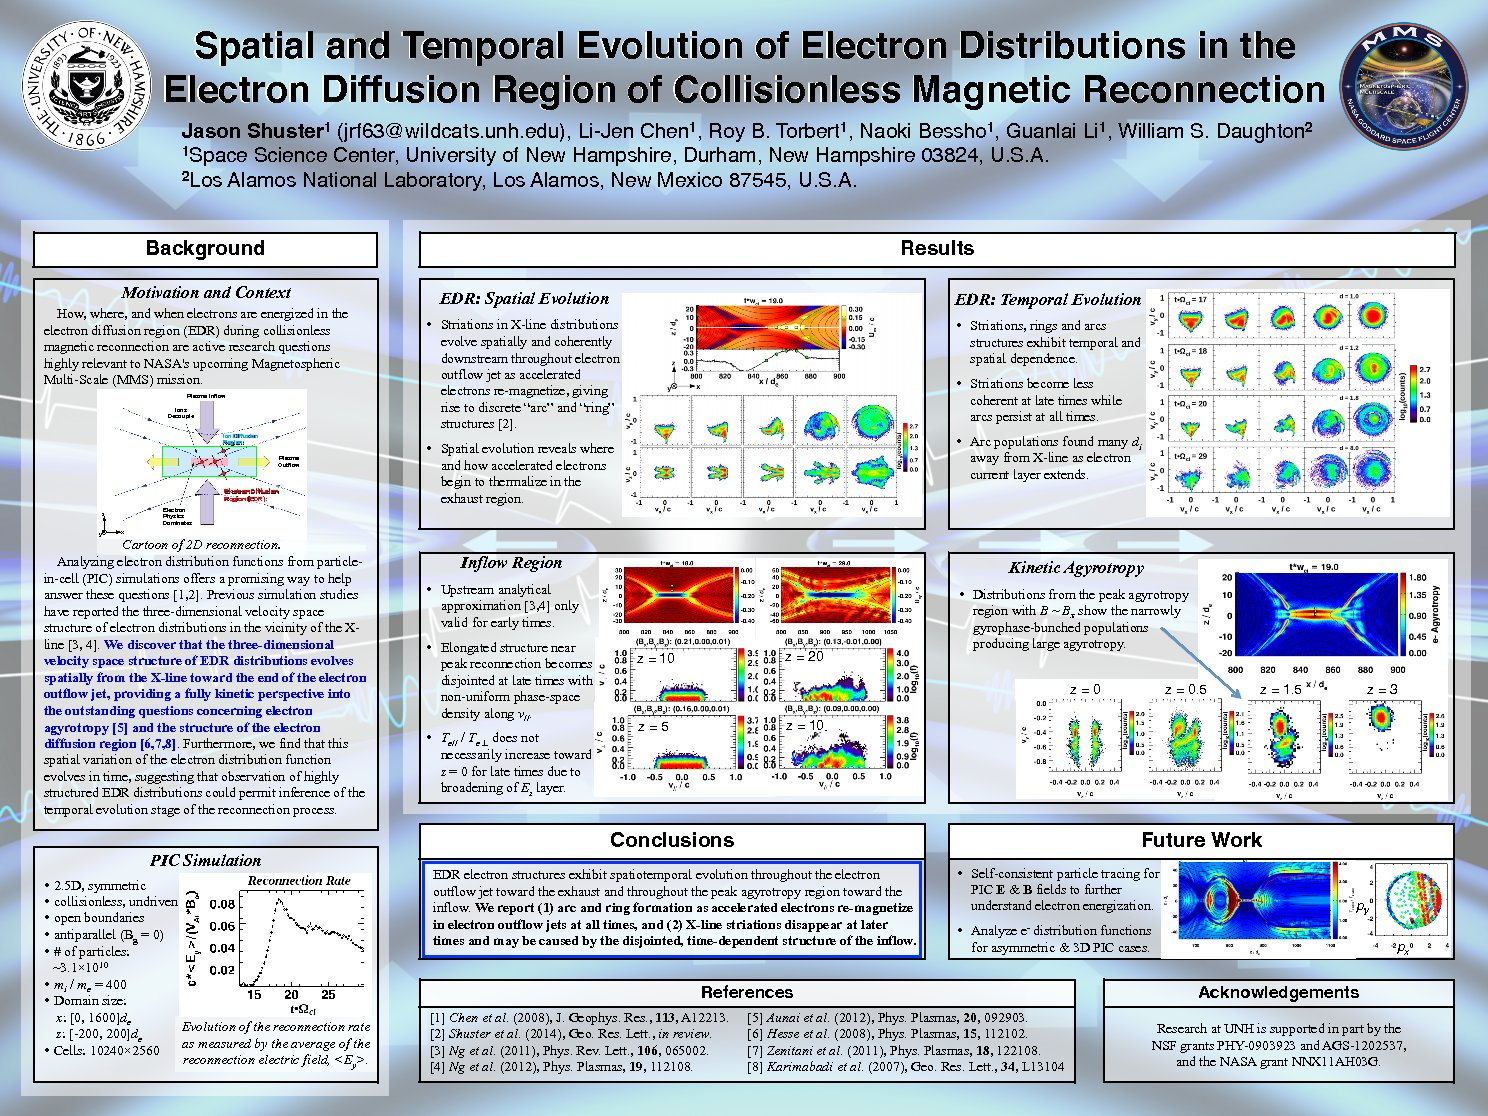 Spatial And Temporal Evolution Of Electron Distributions In The Electron Diffusion Region Of Collisionless Magnetic Reconnection by shuster